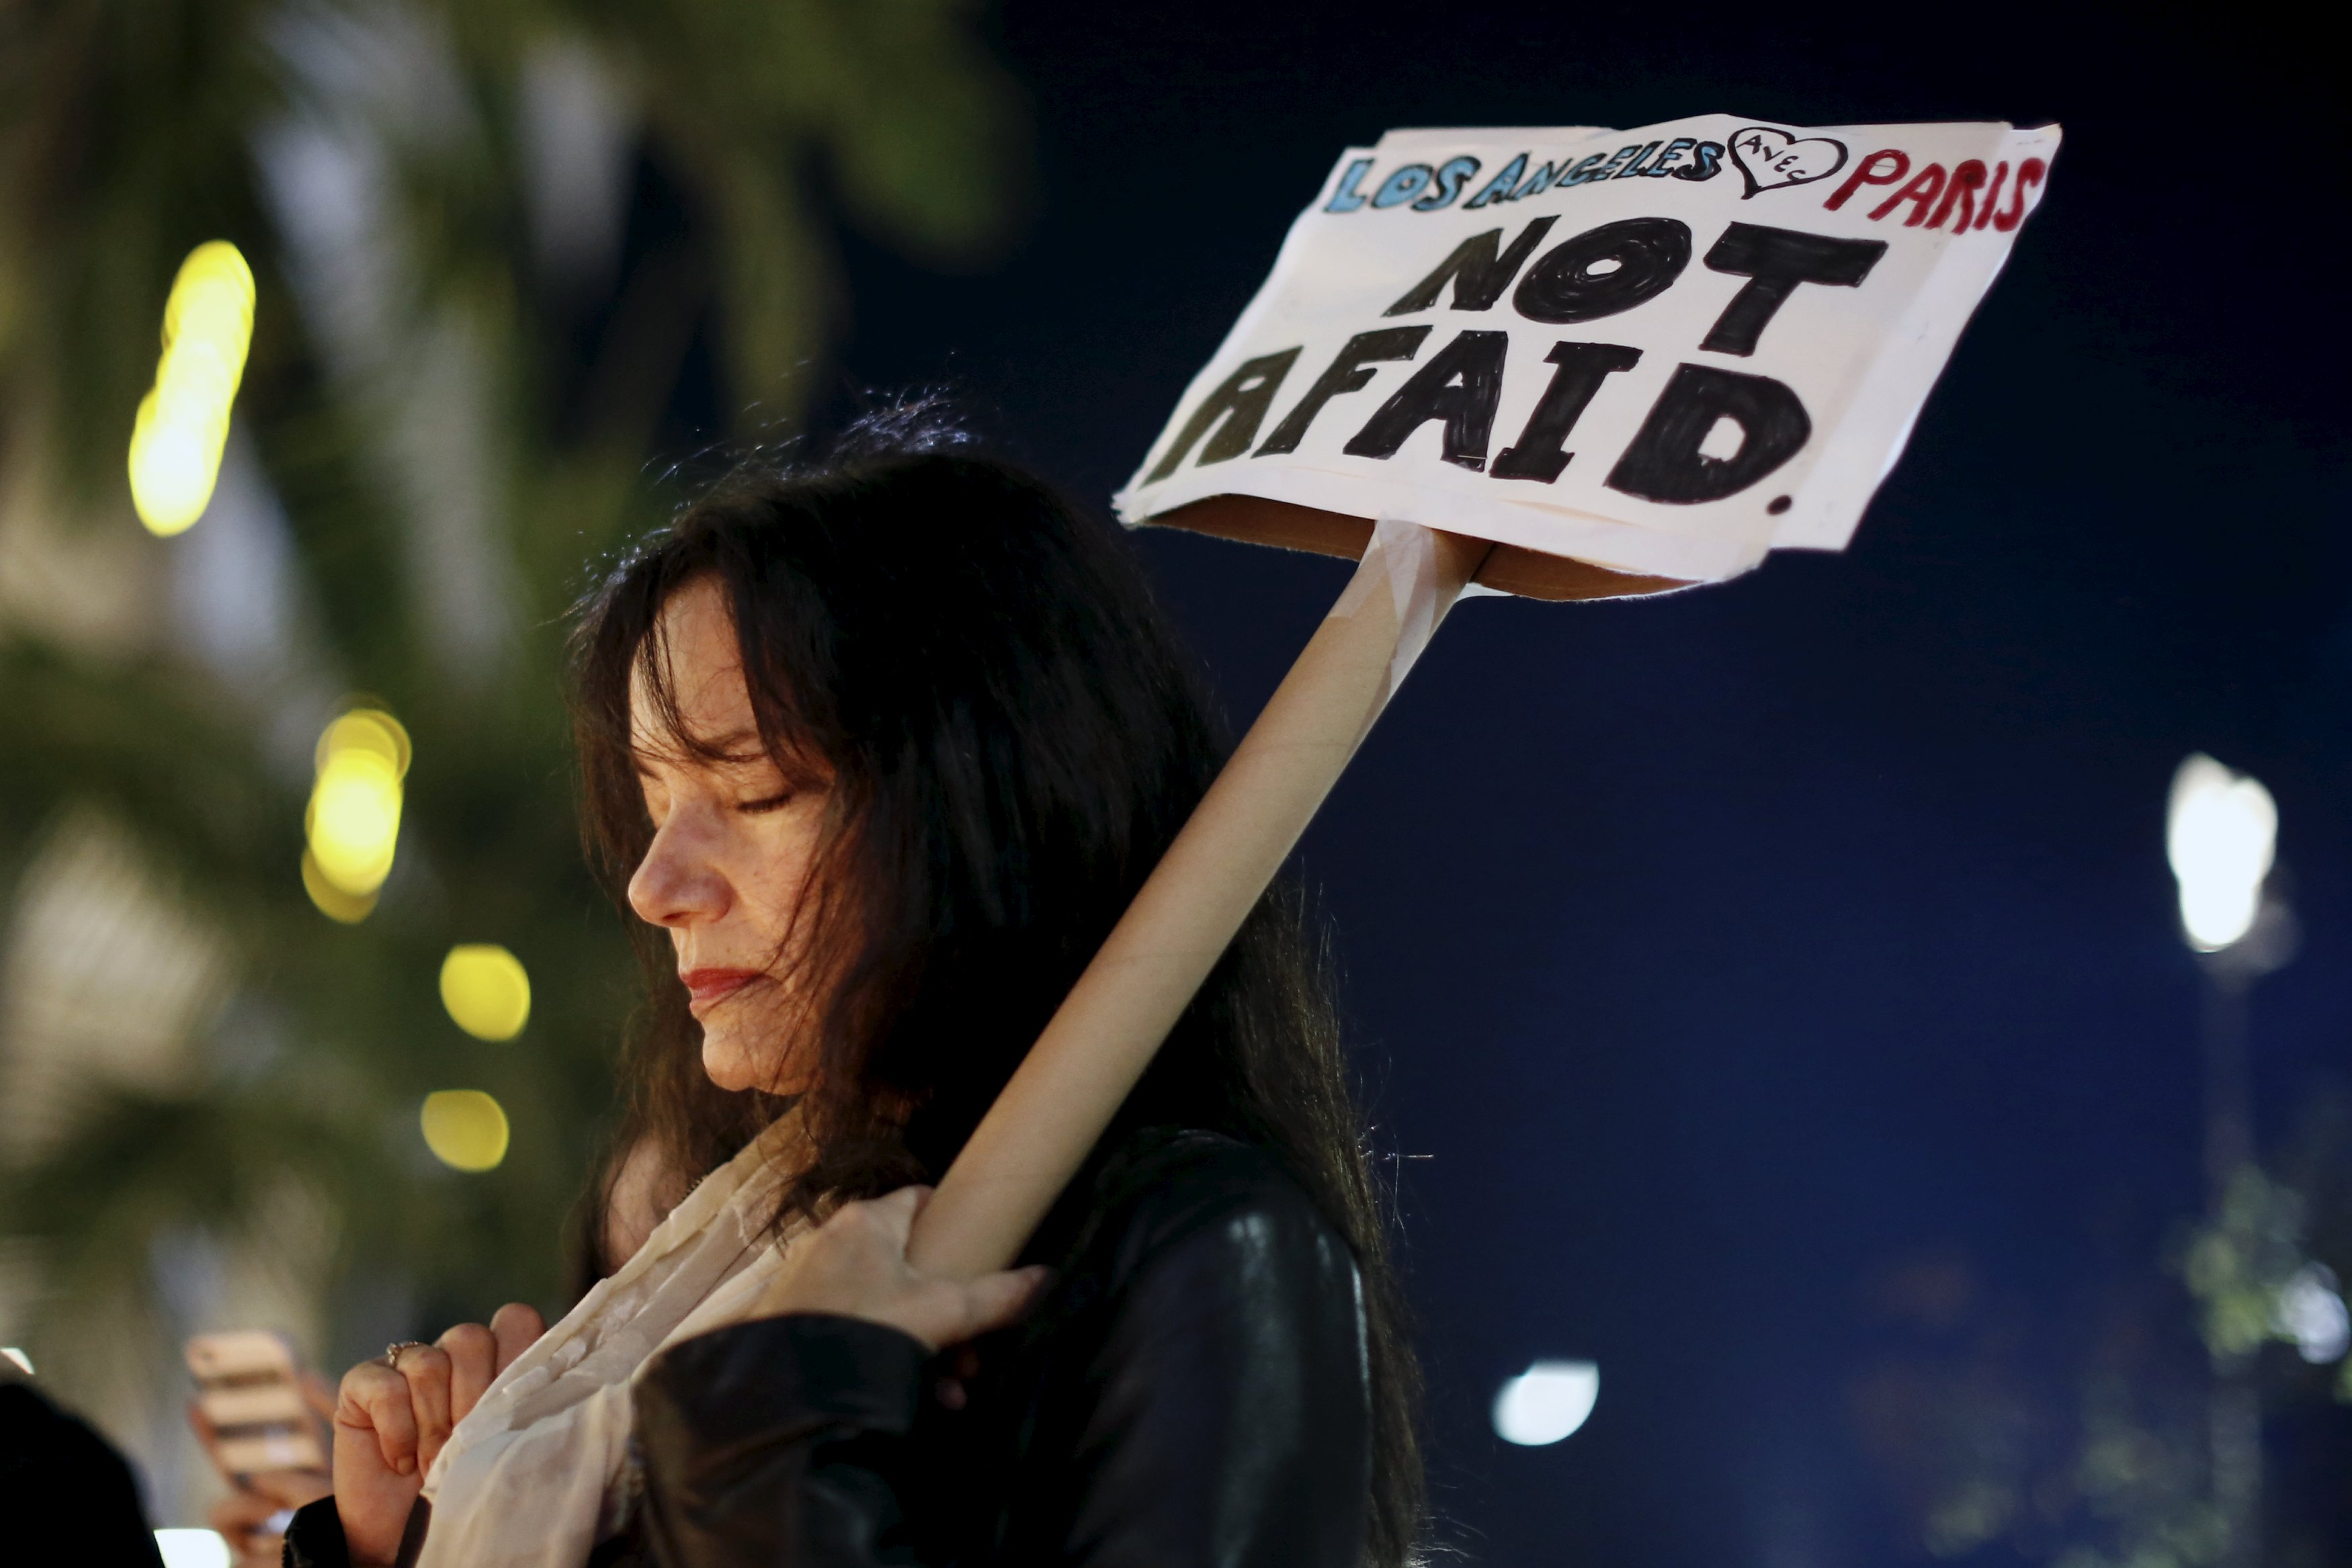 People gather for a vigil outside the French Consulate in response to the attacks in Paris, in Los Angeles, California, United States, November 14, 2015. Photo: Reuters